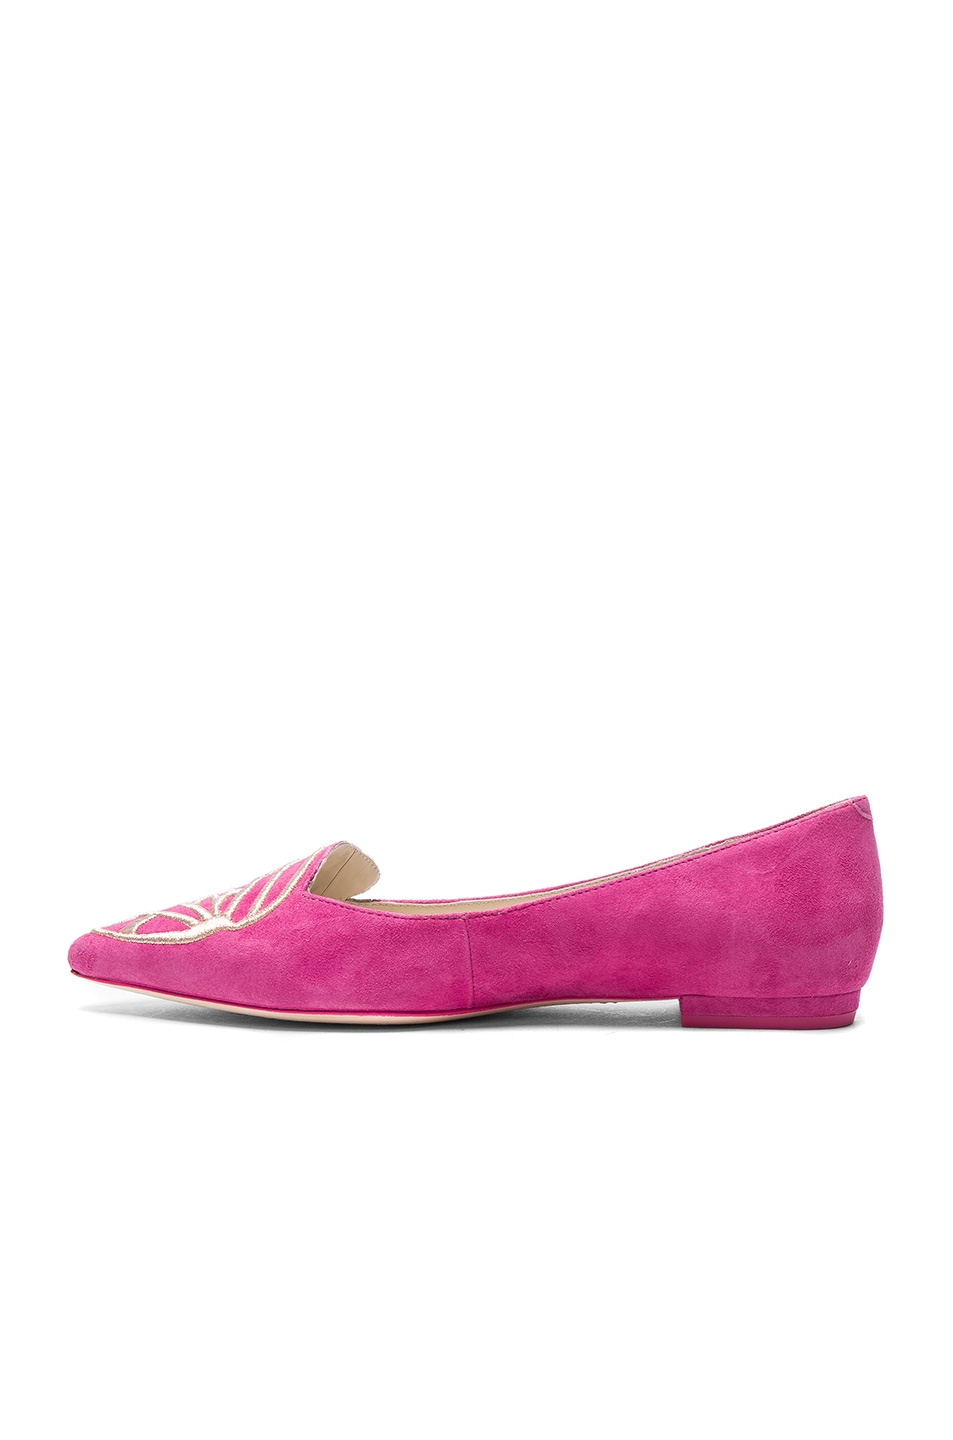 Image 5 of Sophia Webster Suede Bibi Butterfly Flats in Magenta & Rose Gold